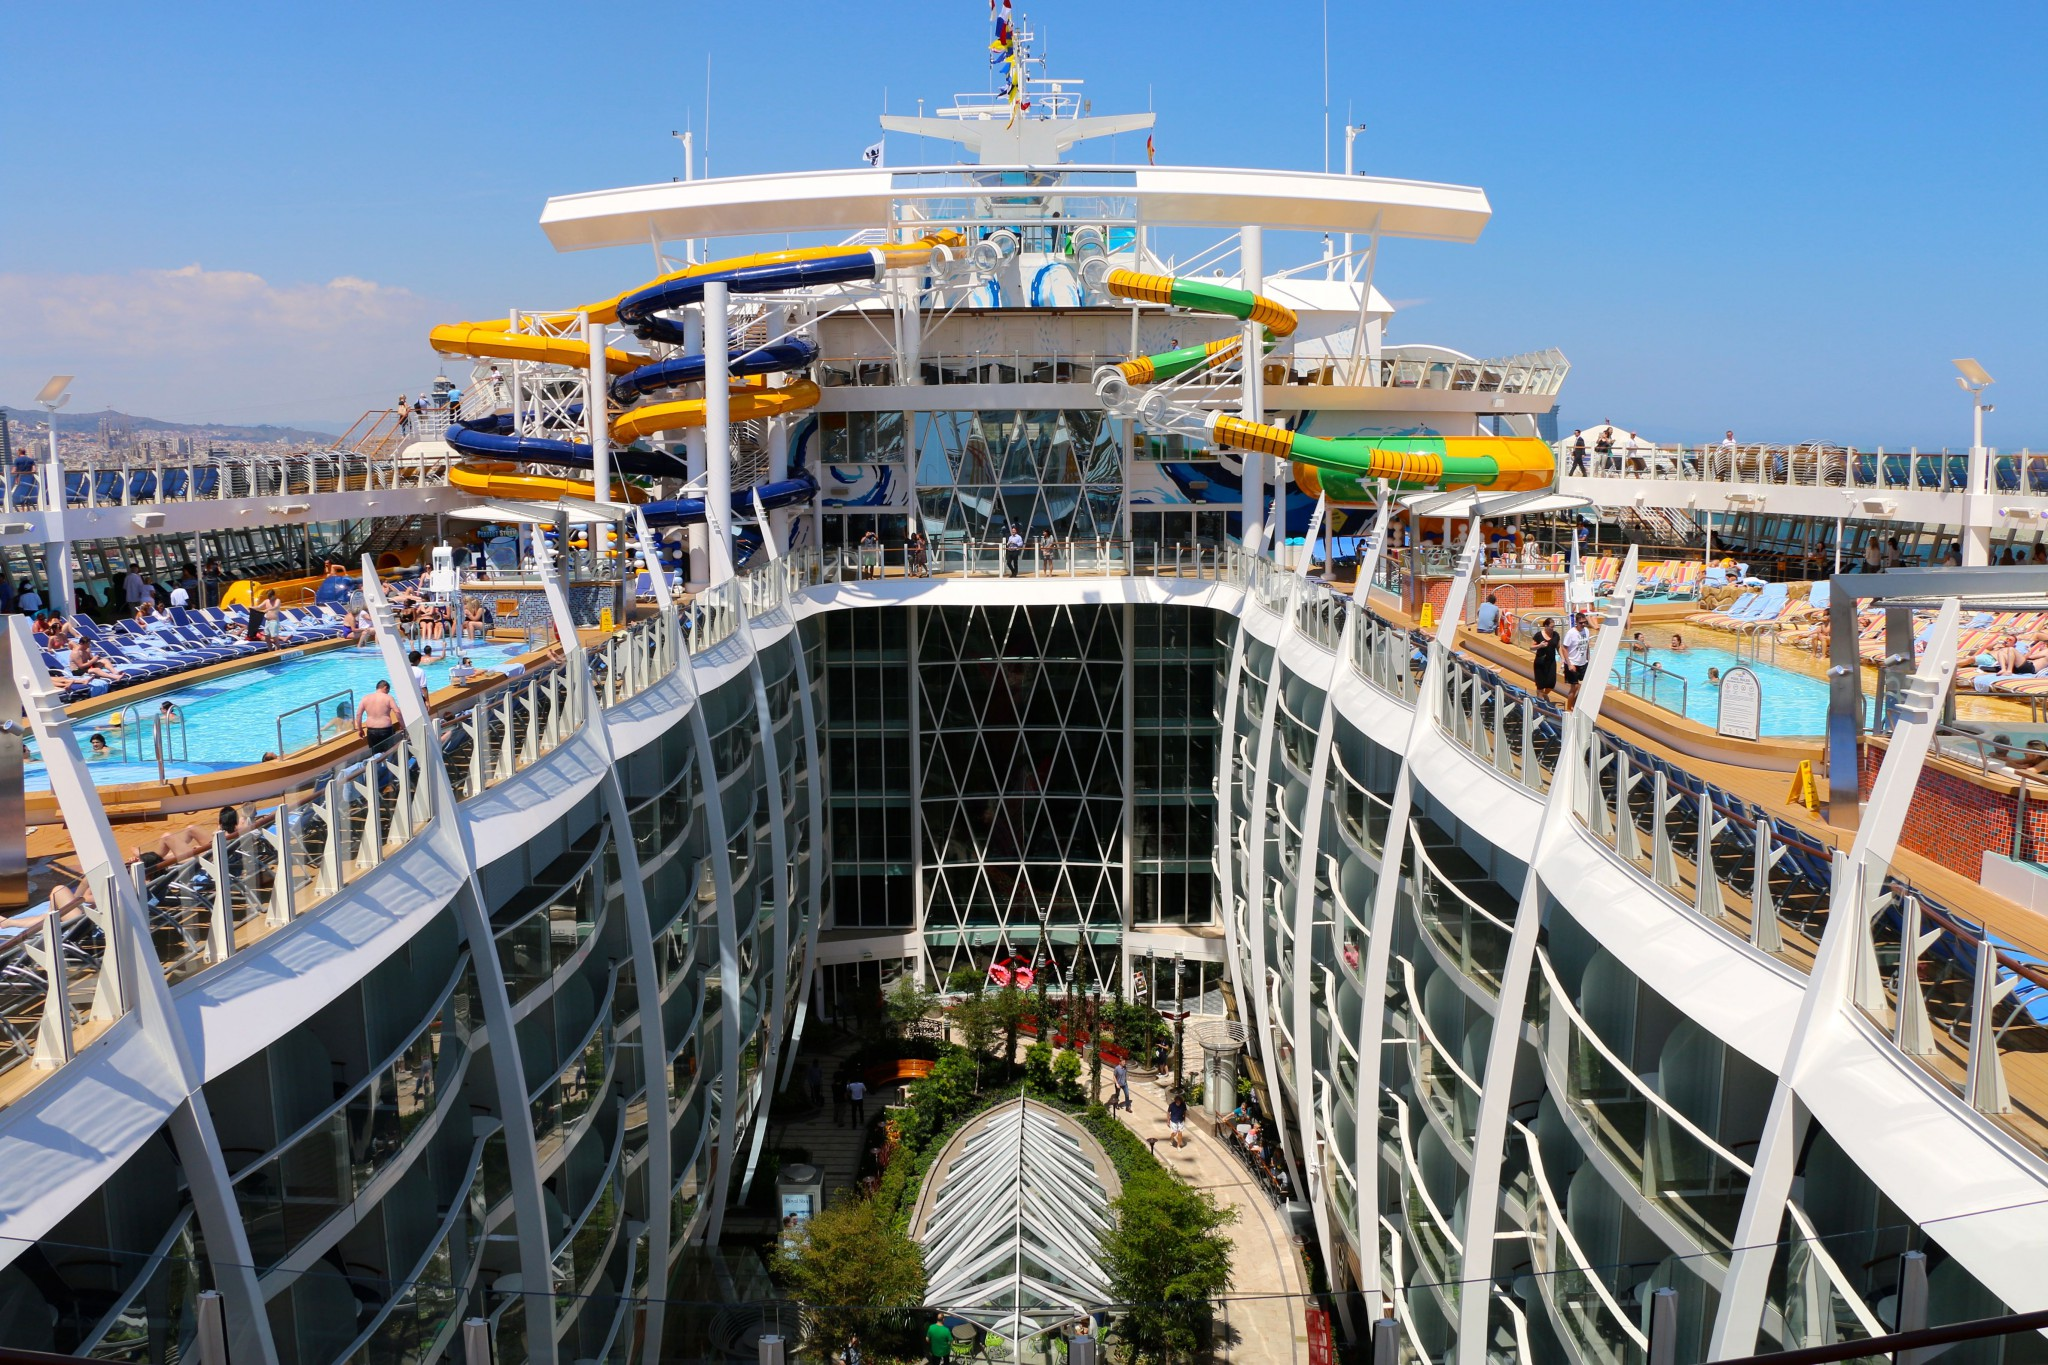 Harmony of the seas, Foto Ida Thunberg